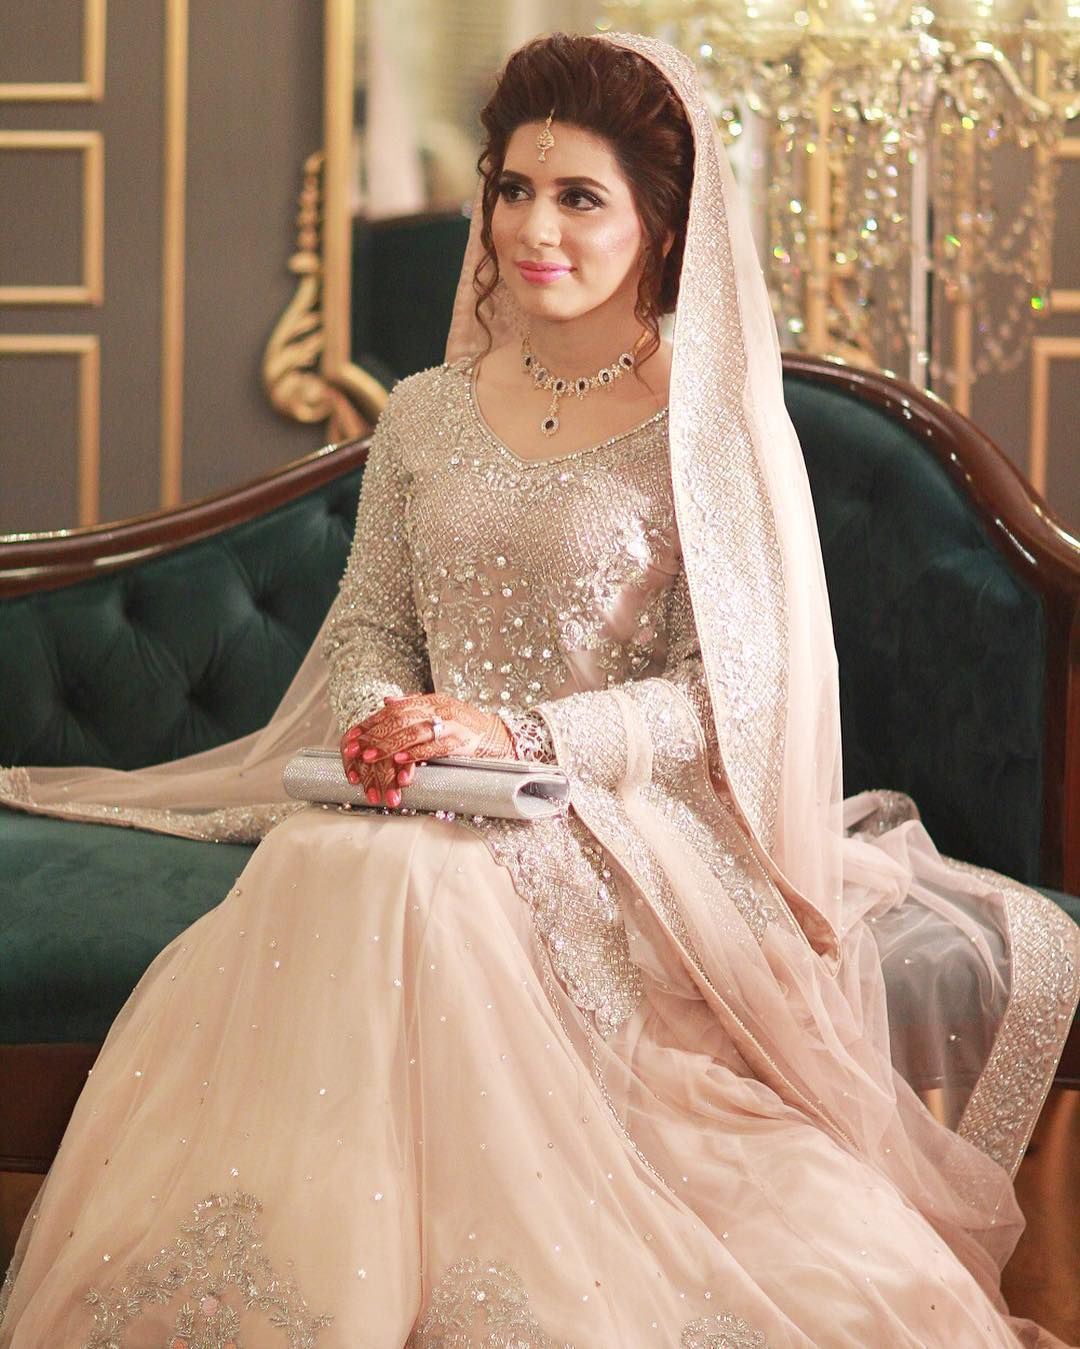 "Pakistani Bride ""Fairytale Feels! #uzmasbridalsalon"